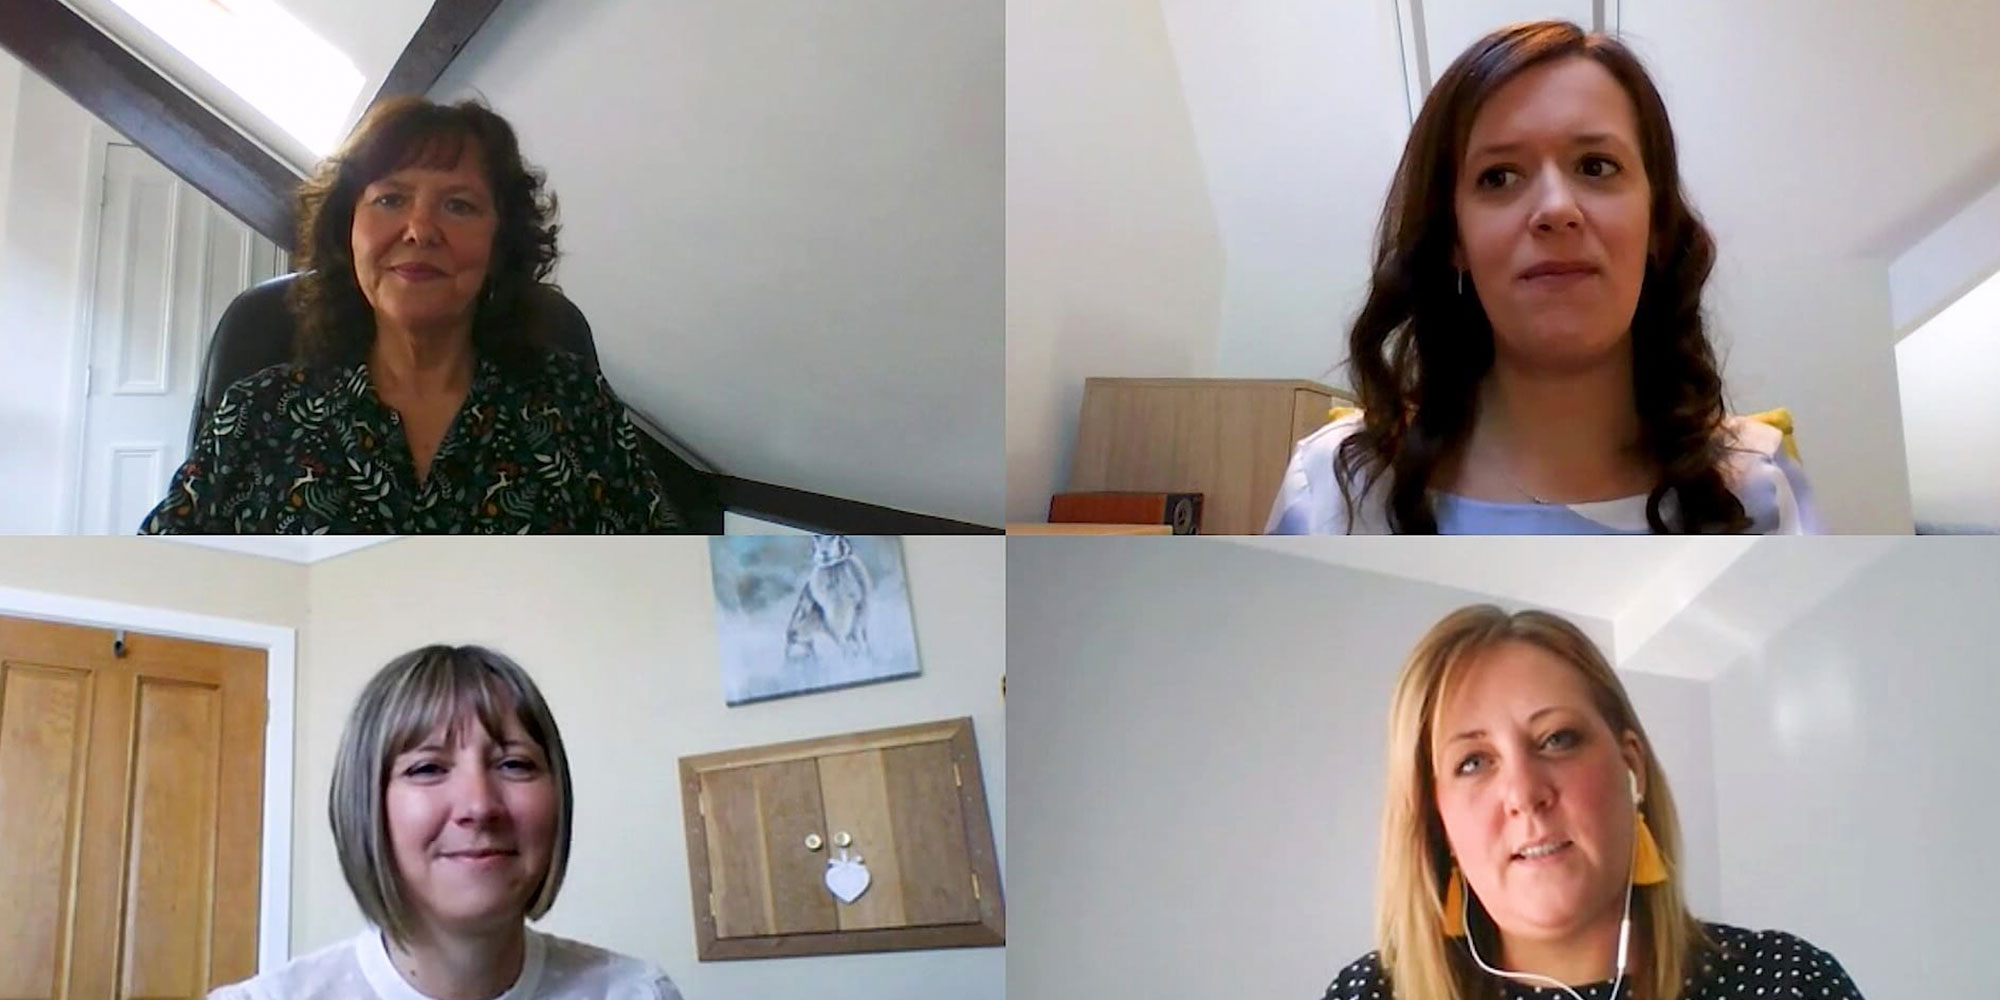 Image of host and three academics on webcam during online filming of teacher training webcast